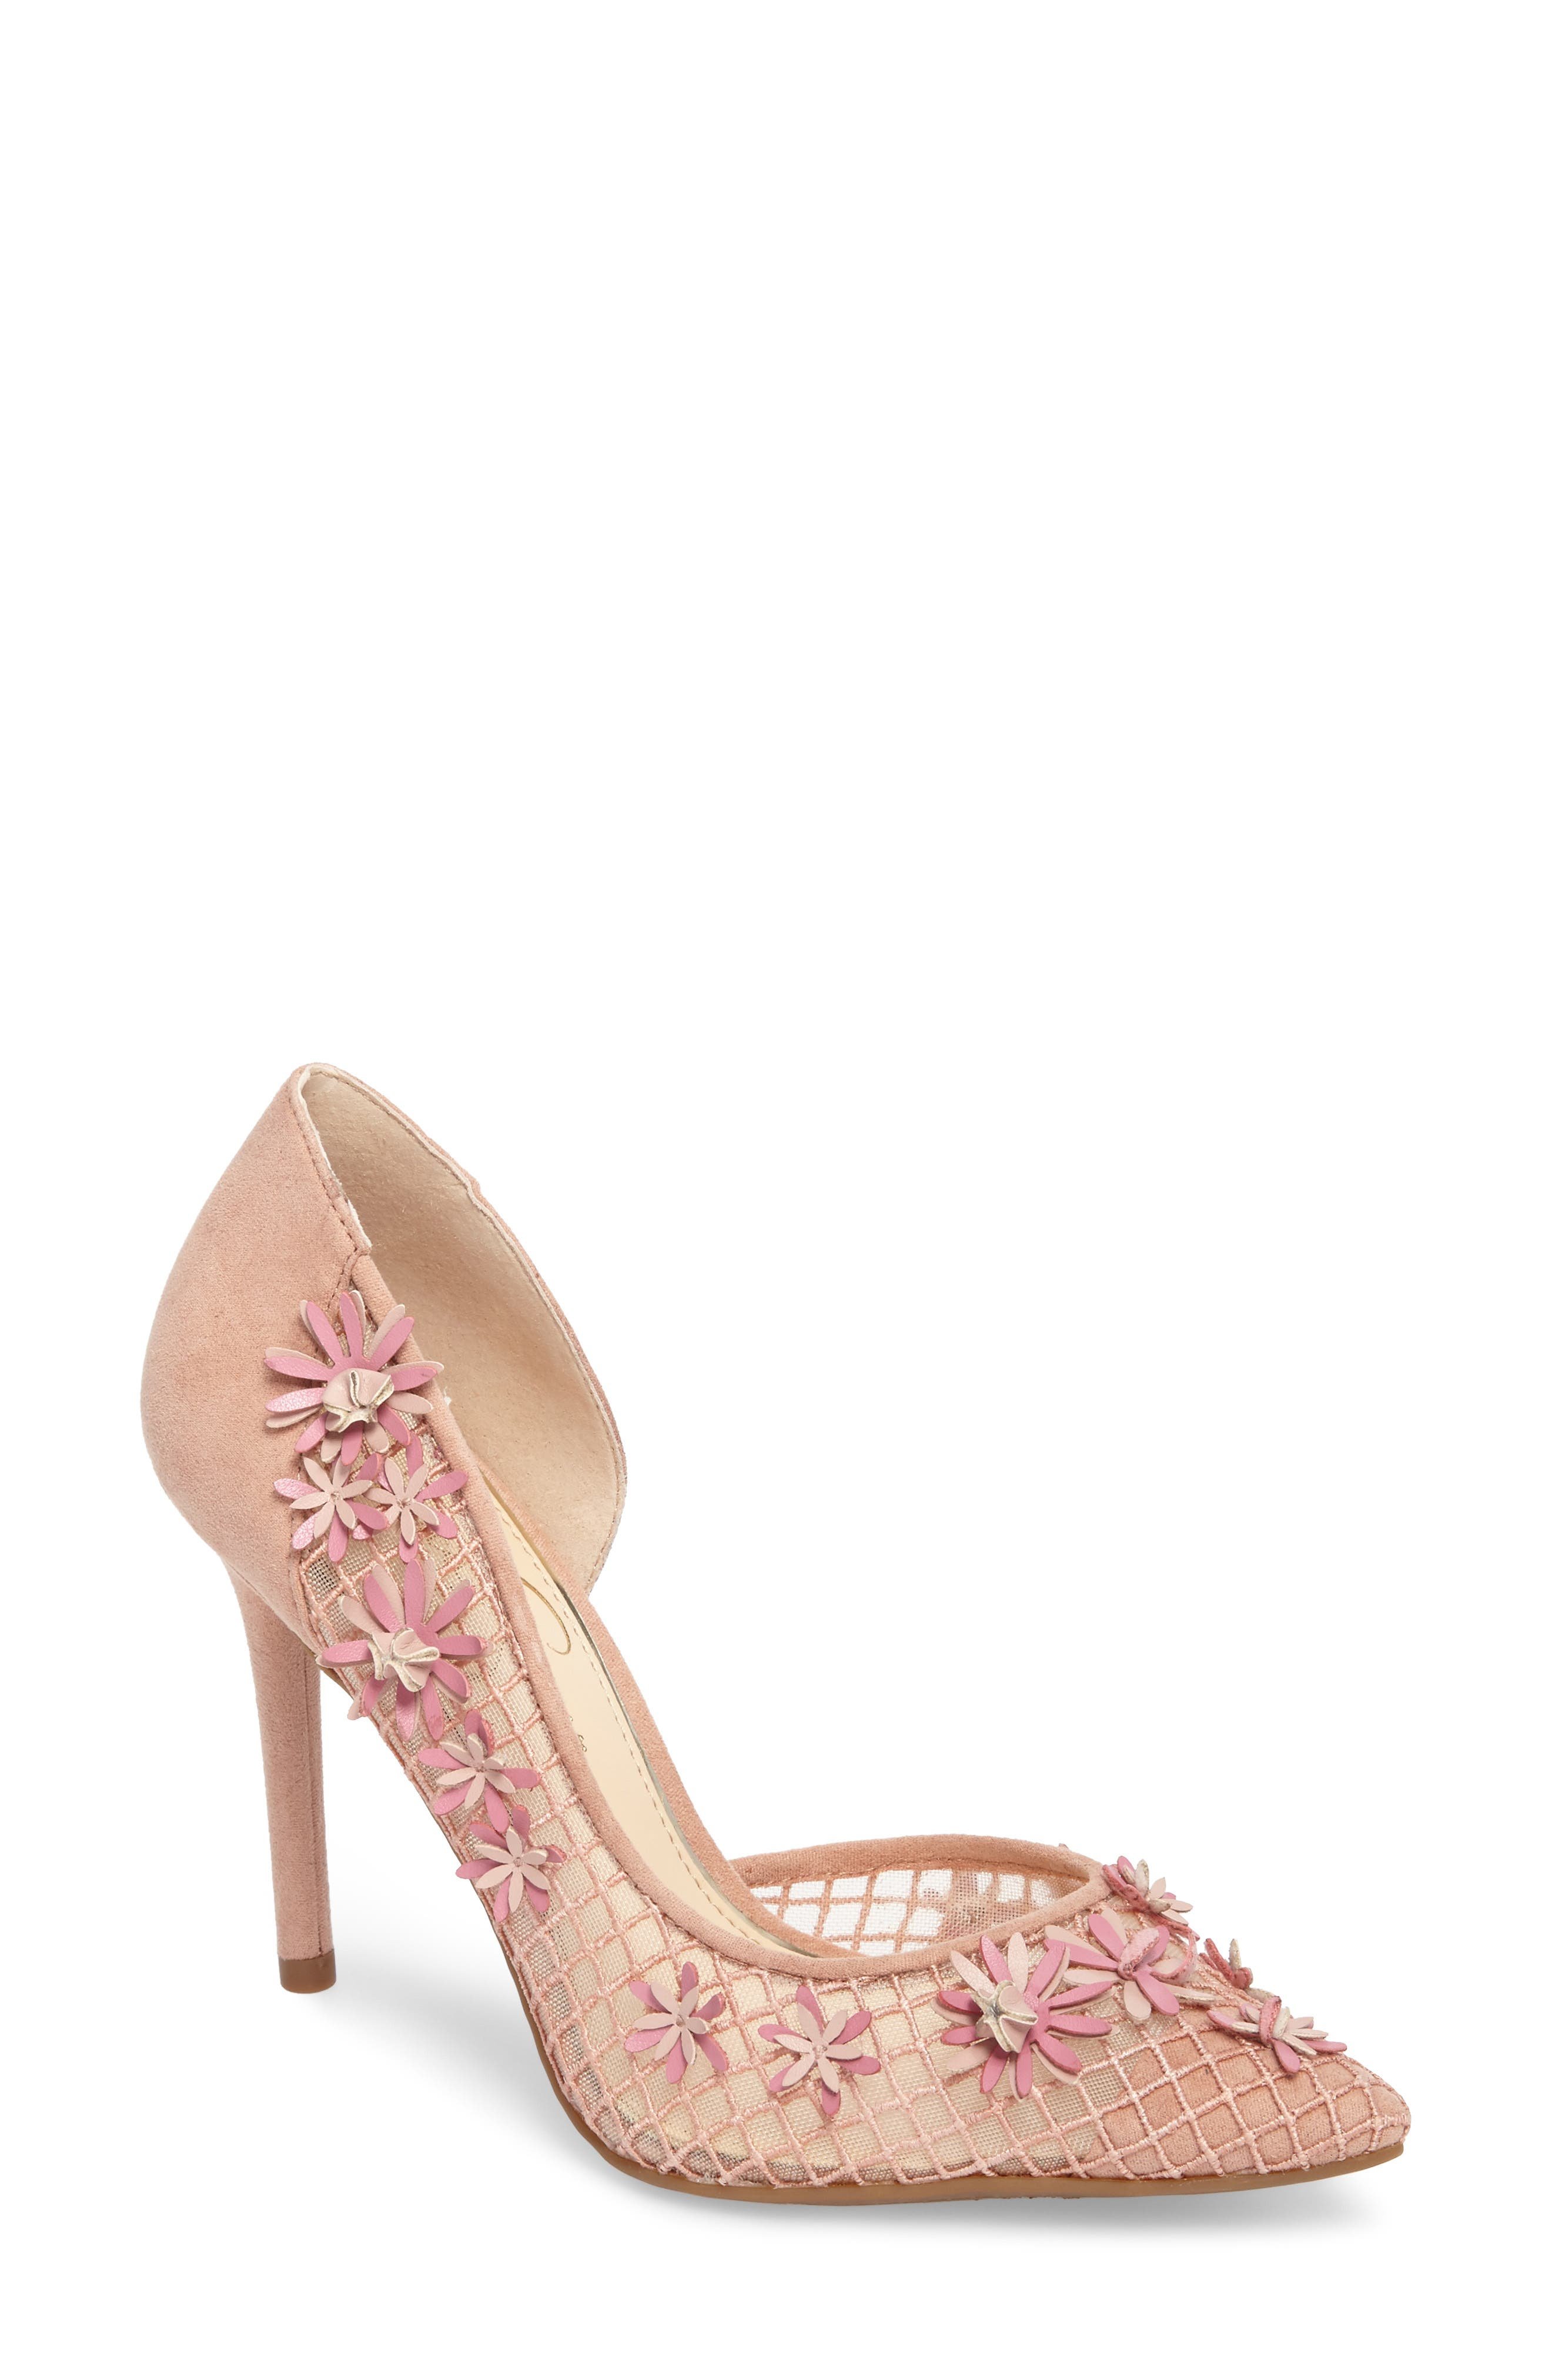 Jessica Simpson Leighah Floral Illusion Pump (Women)